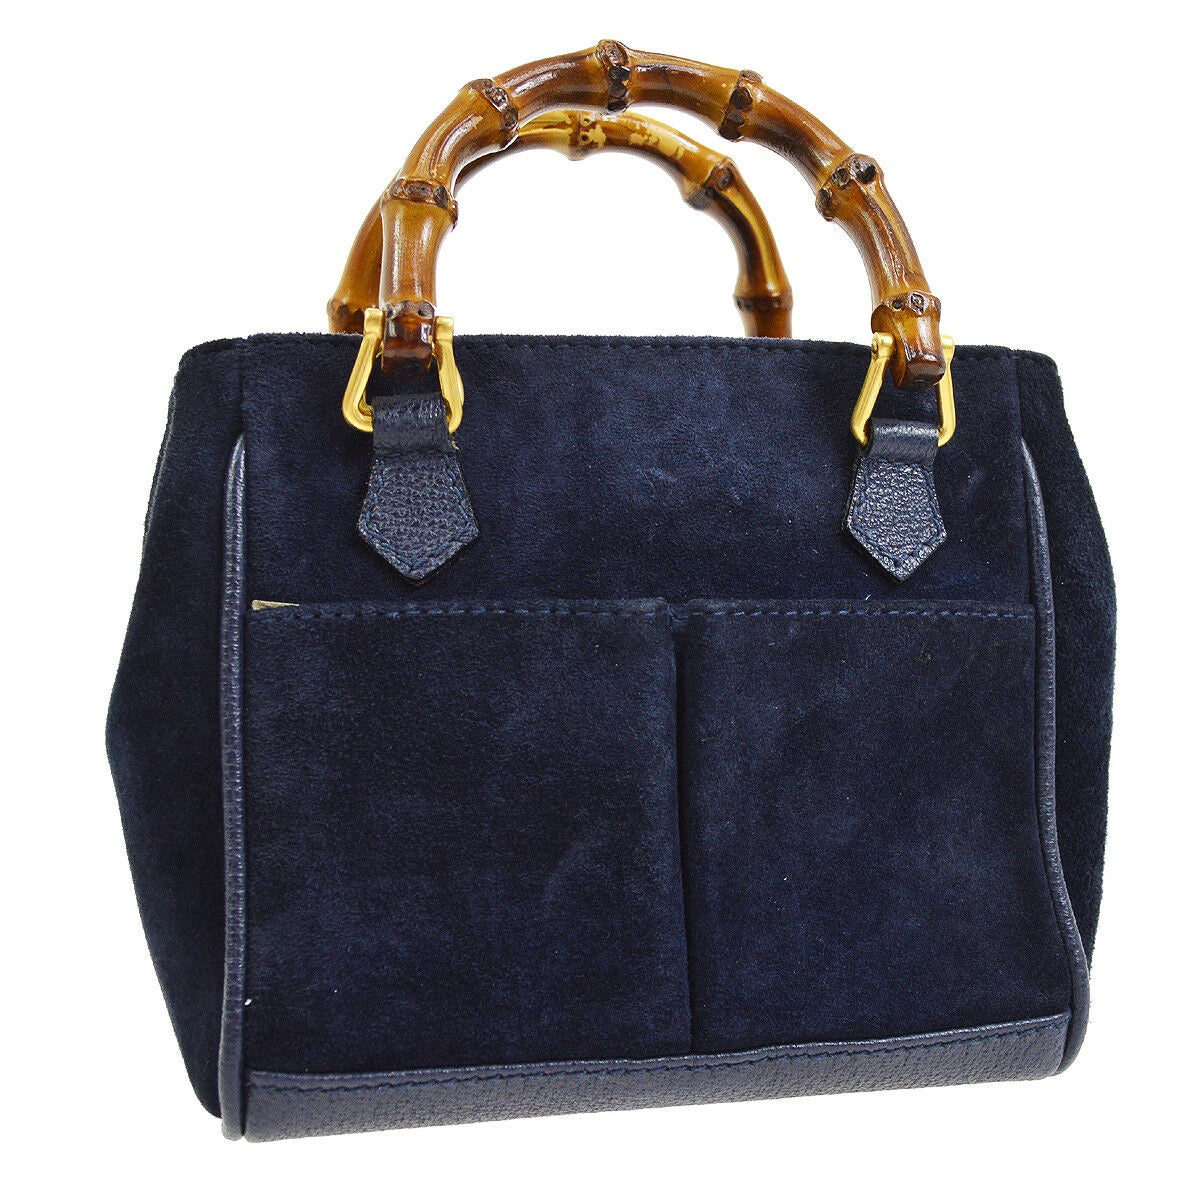 302f5a744fdf Gucci Mini Bamboo Navy Blue Leather Suede Cross Body Bag – Luxury ...